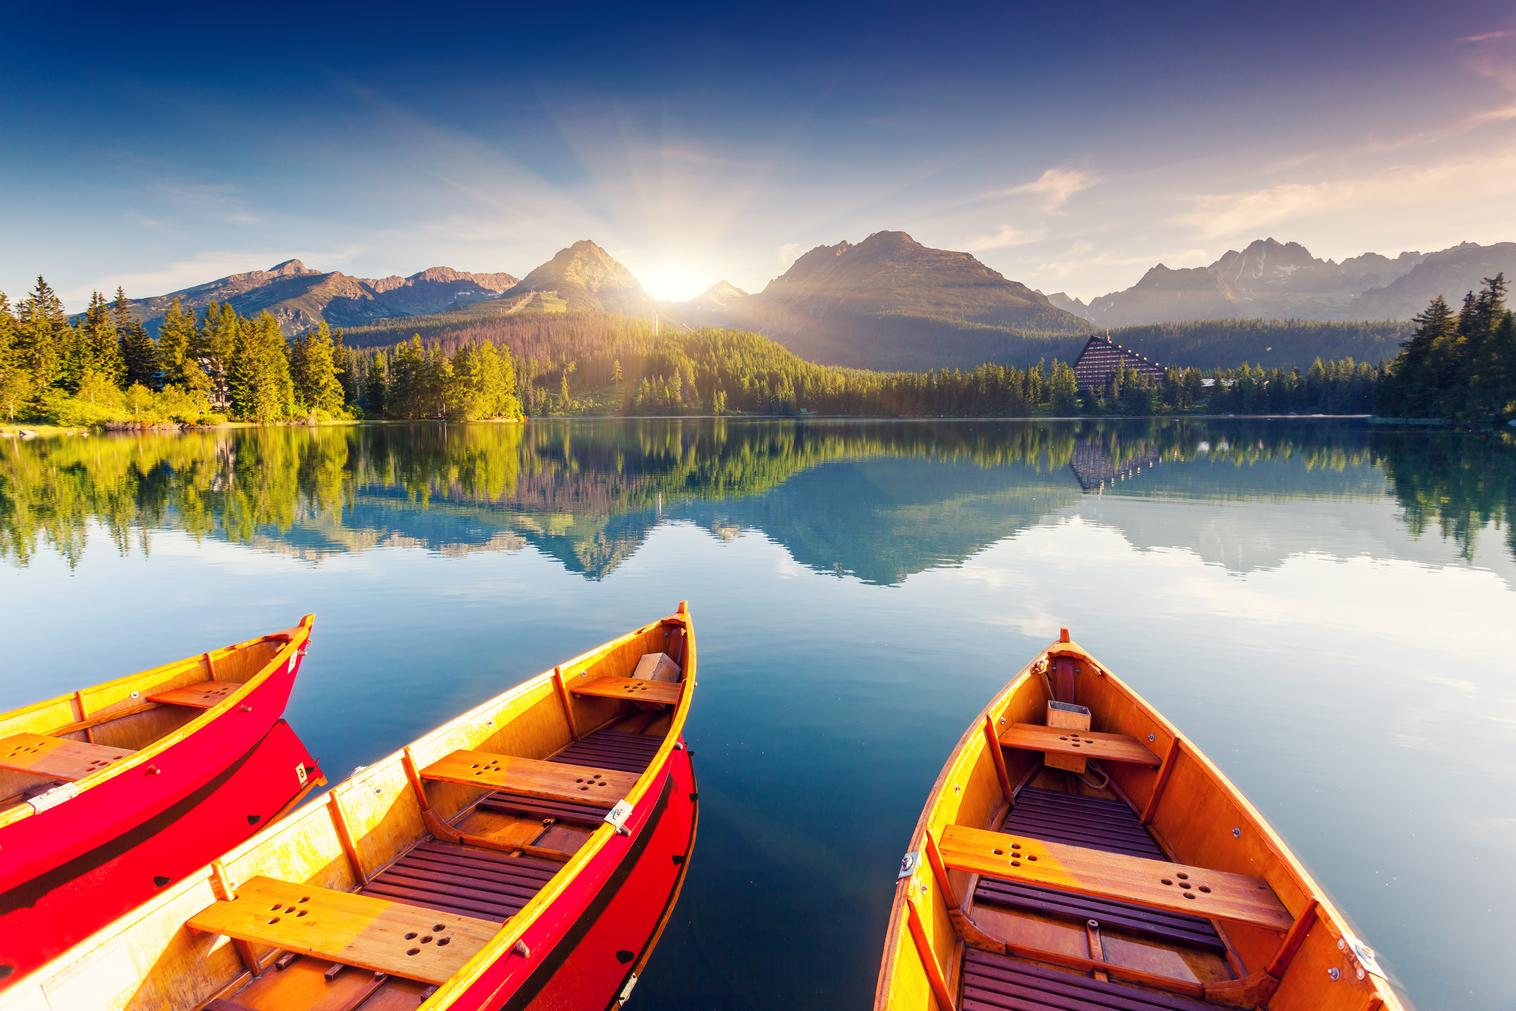 Boats at the edge of a lake with mountains in the background